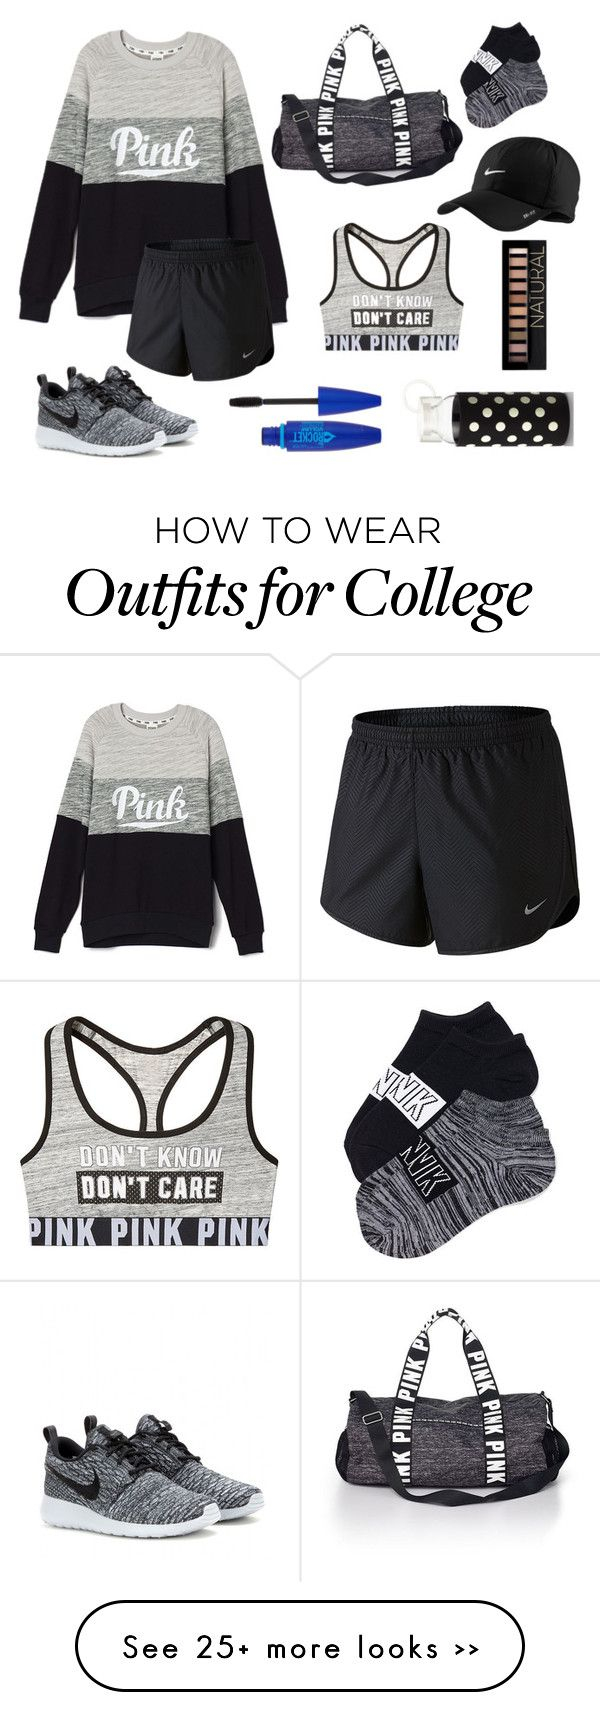 """Pink>black"" by averyadamss on Polyvore featuring NIKE, Victoria's Secret PINK, Kate Spade, Maybelline and Forever 21"